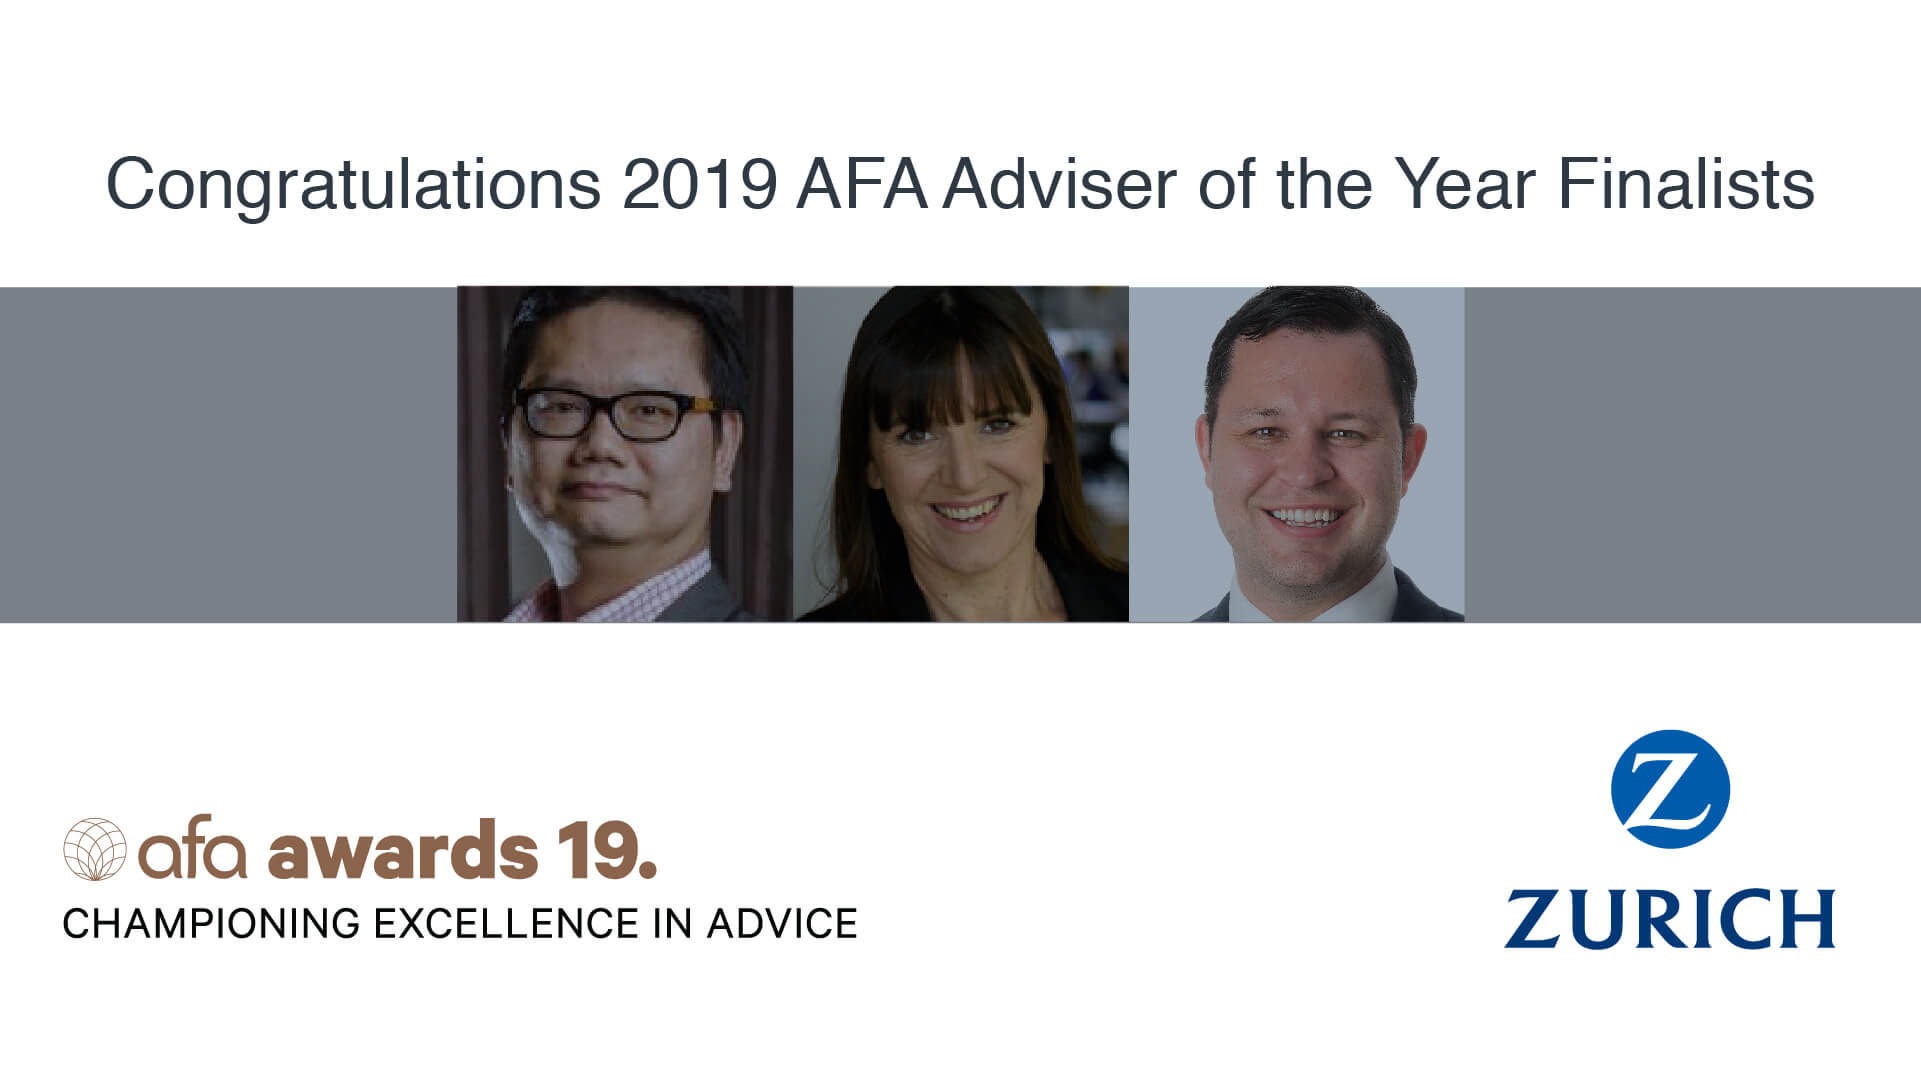 AFA 2019 Adviser of the Year Finalists Announced